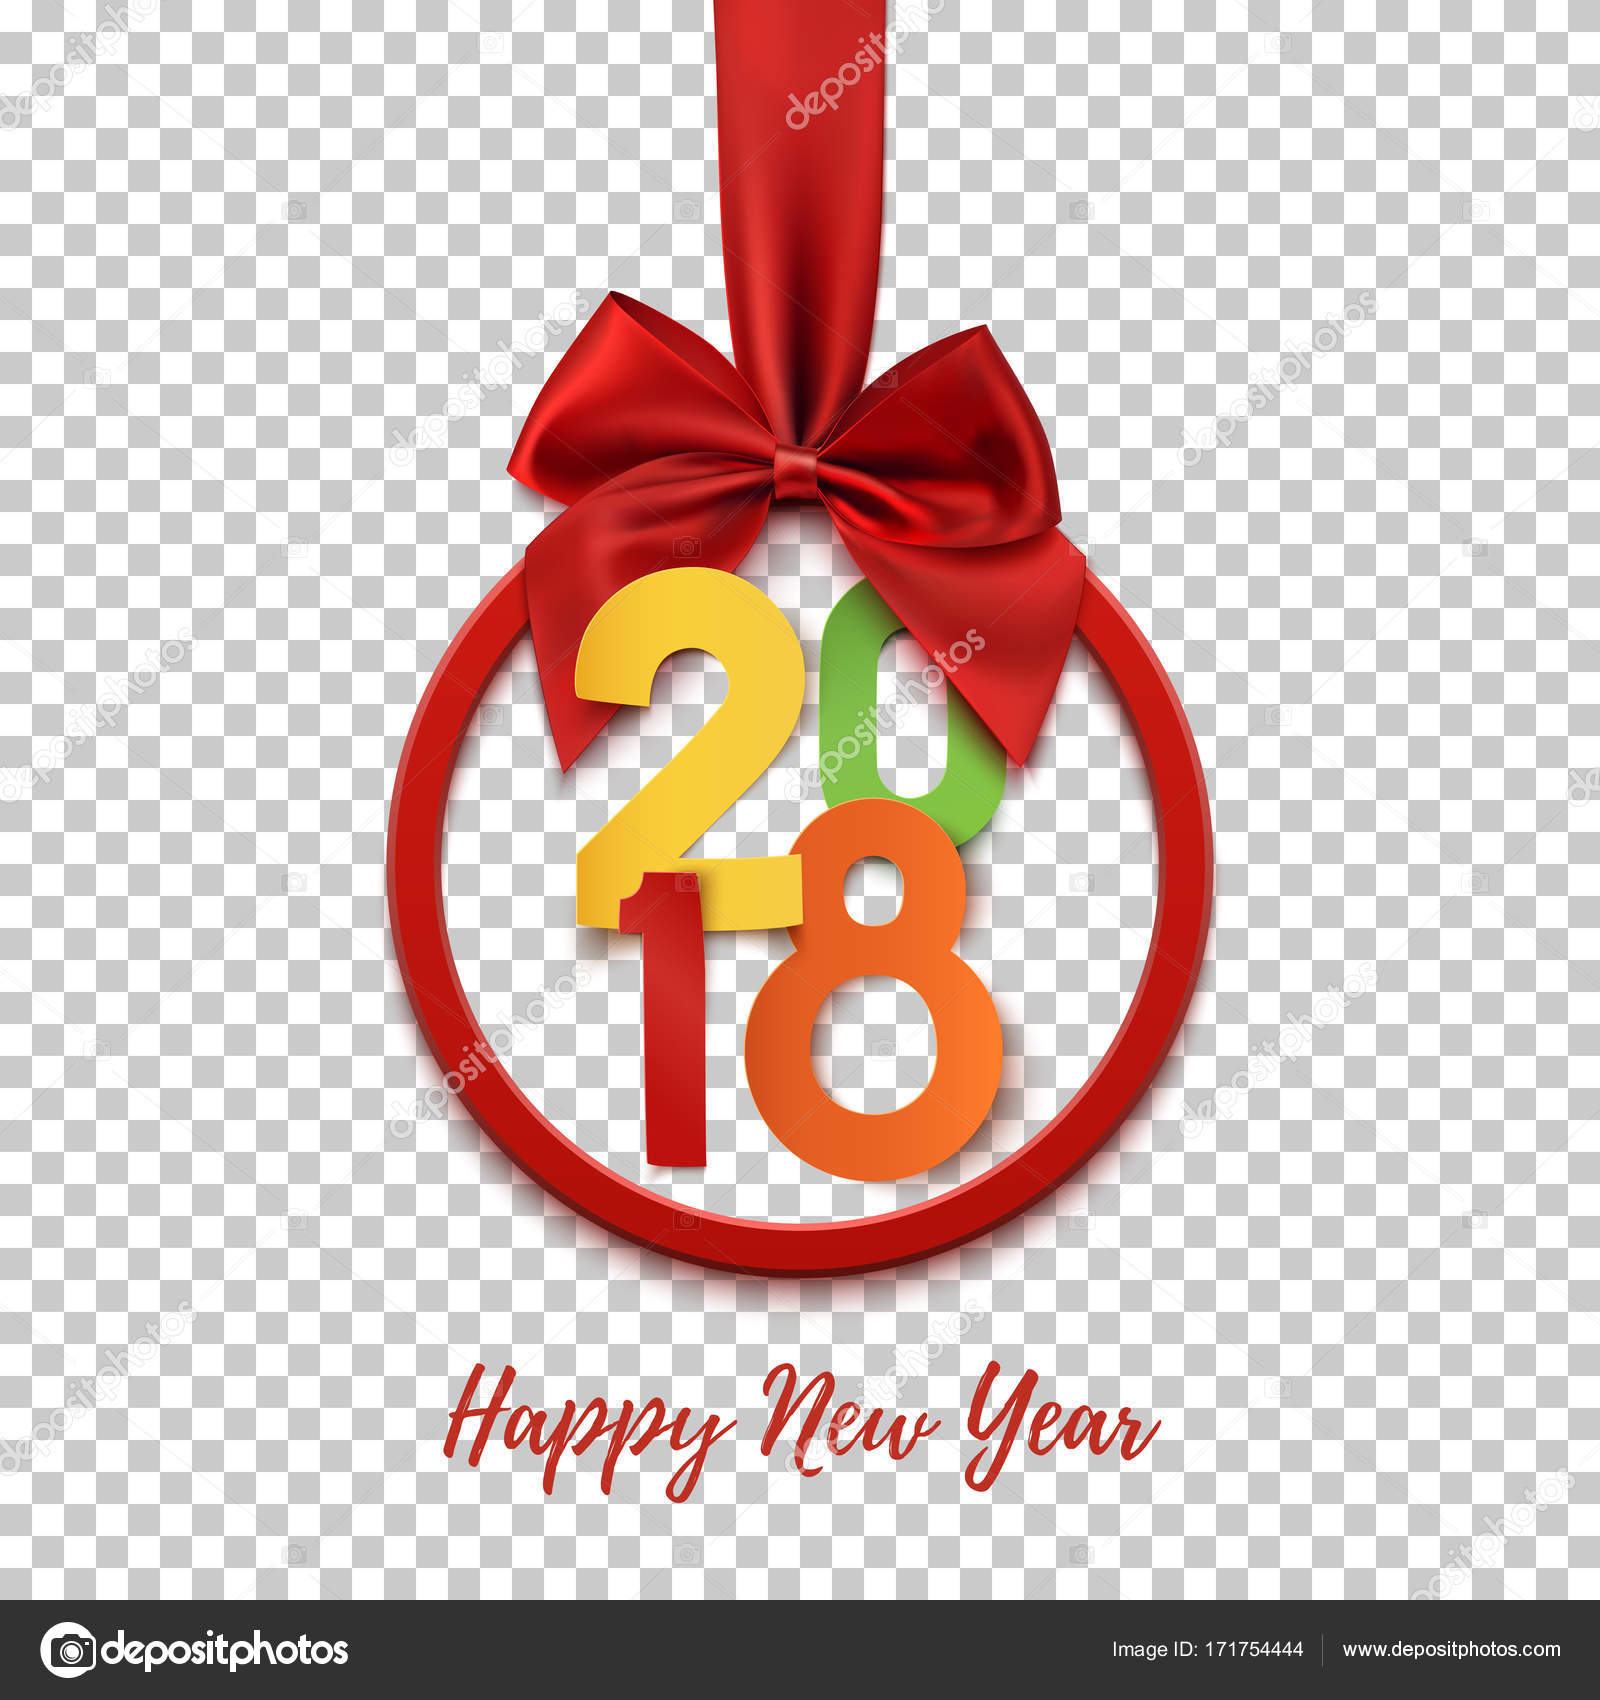 Happy new year 2018 round banner with red ribbon and bow stock happy new year 2018 round banner with red ribbon and bow on transparent background colorful christmas tree decoration greeting card flyer poster or voltagebd Gallery